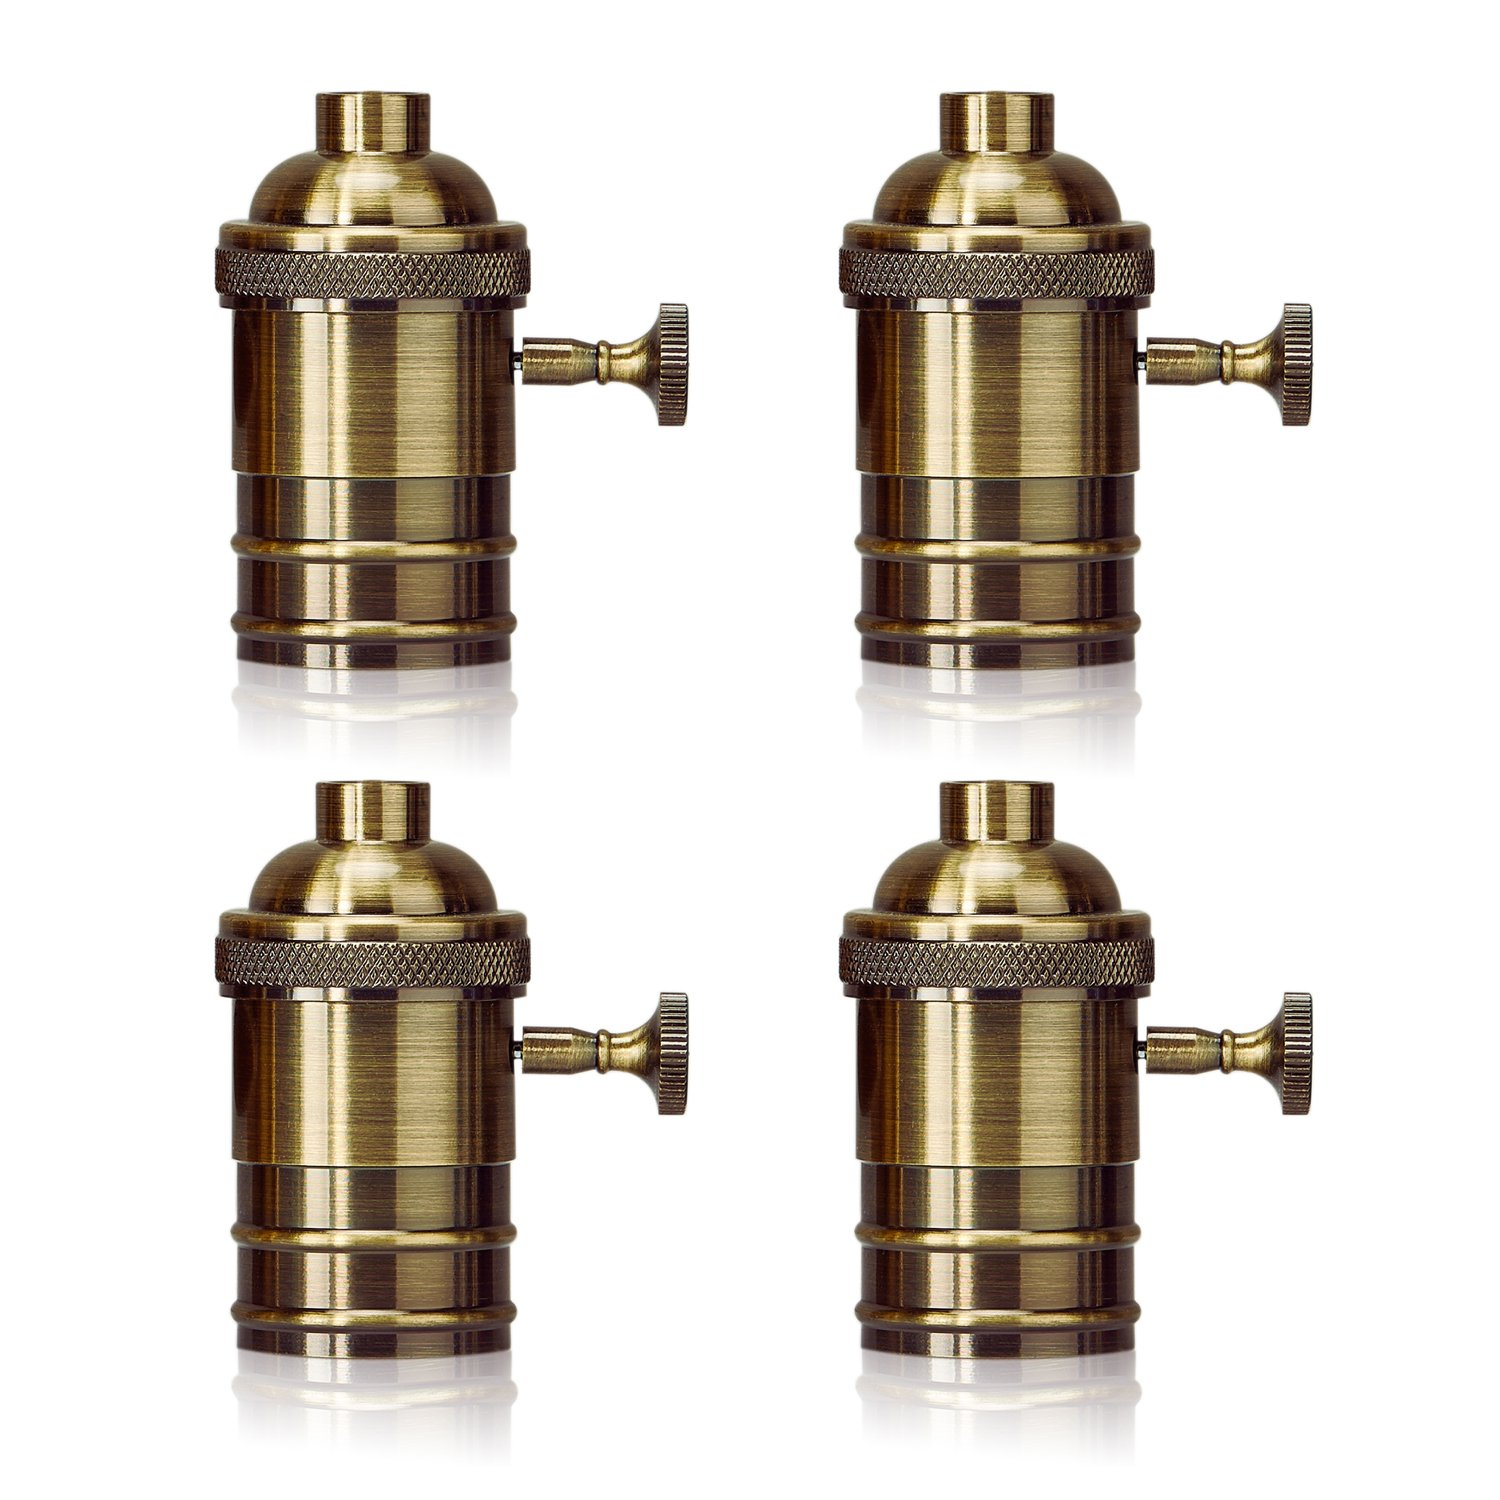 Homestia E26/E27 Medium Light Socket Copper Shell Edison Retro Pendant Lamp Holder Retro Style Fixture Replacement with Turn Knob 4 Pack, Bronze